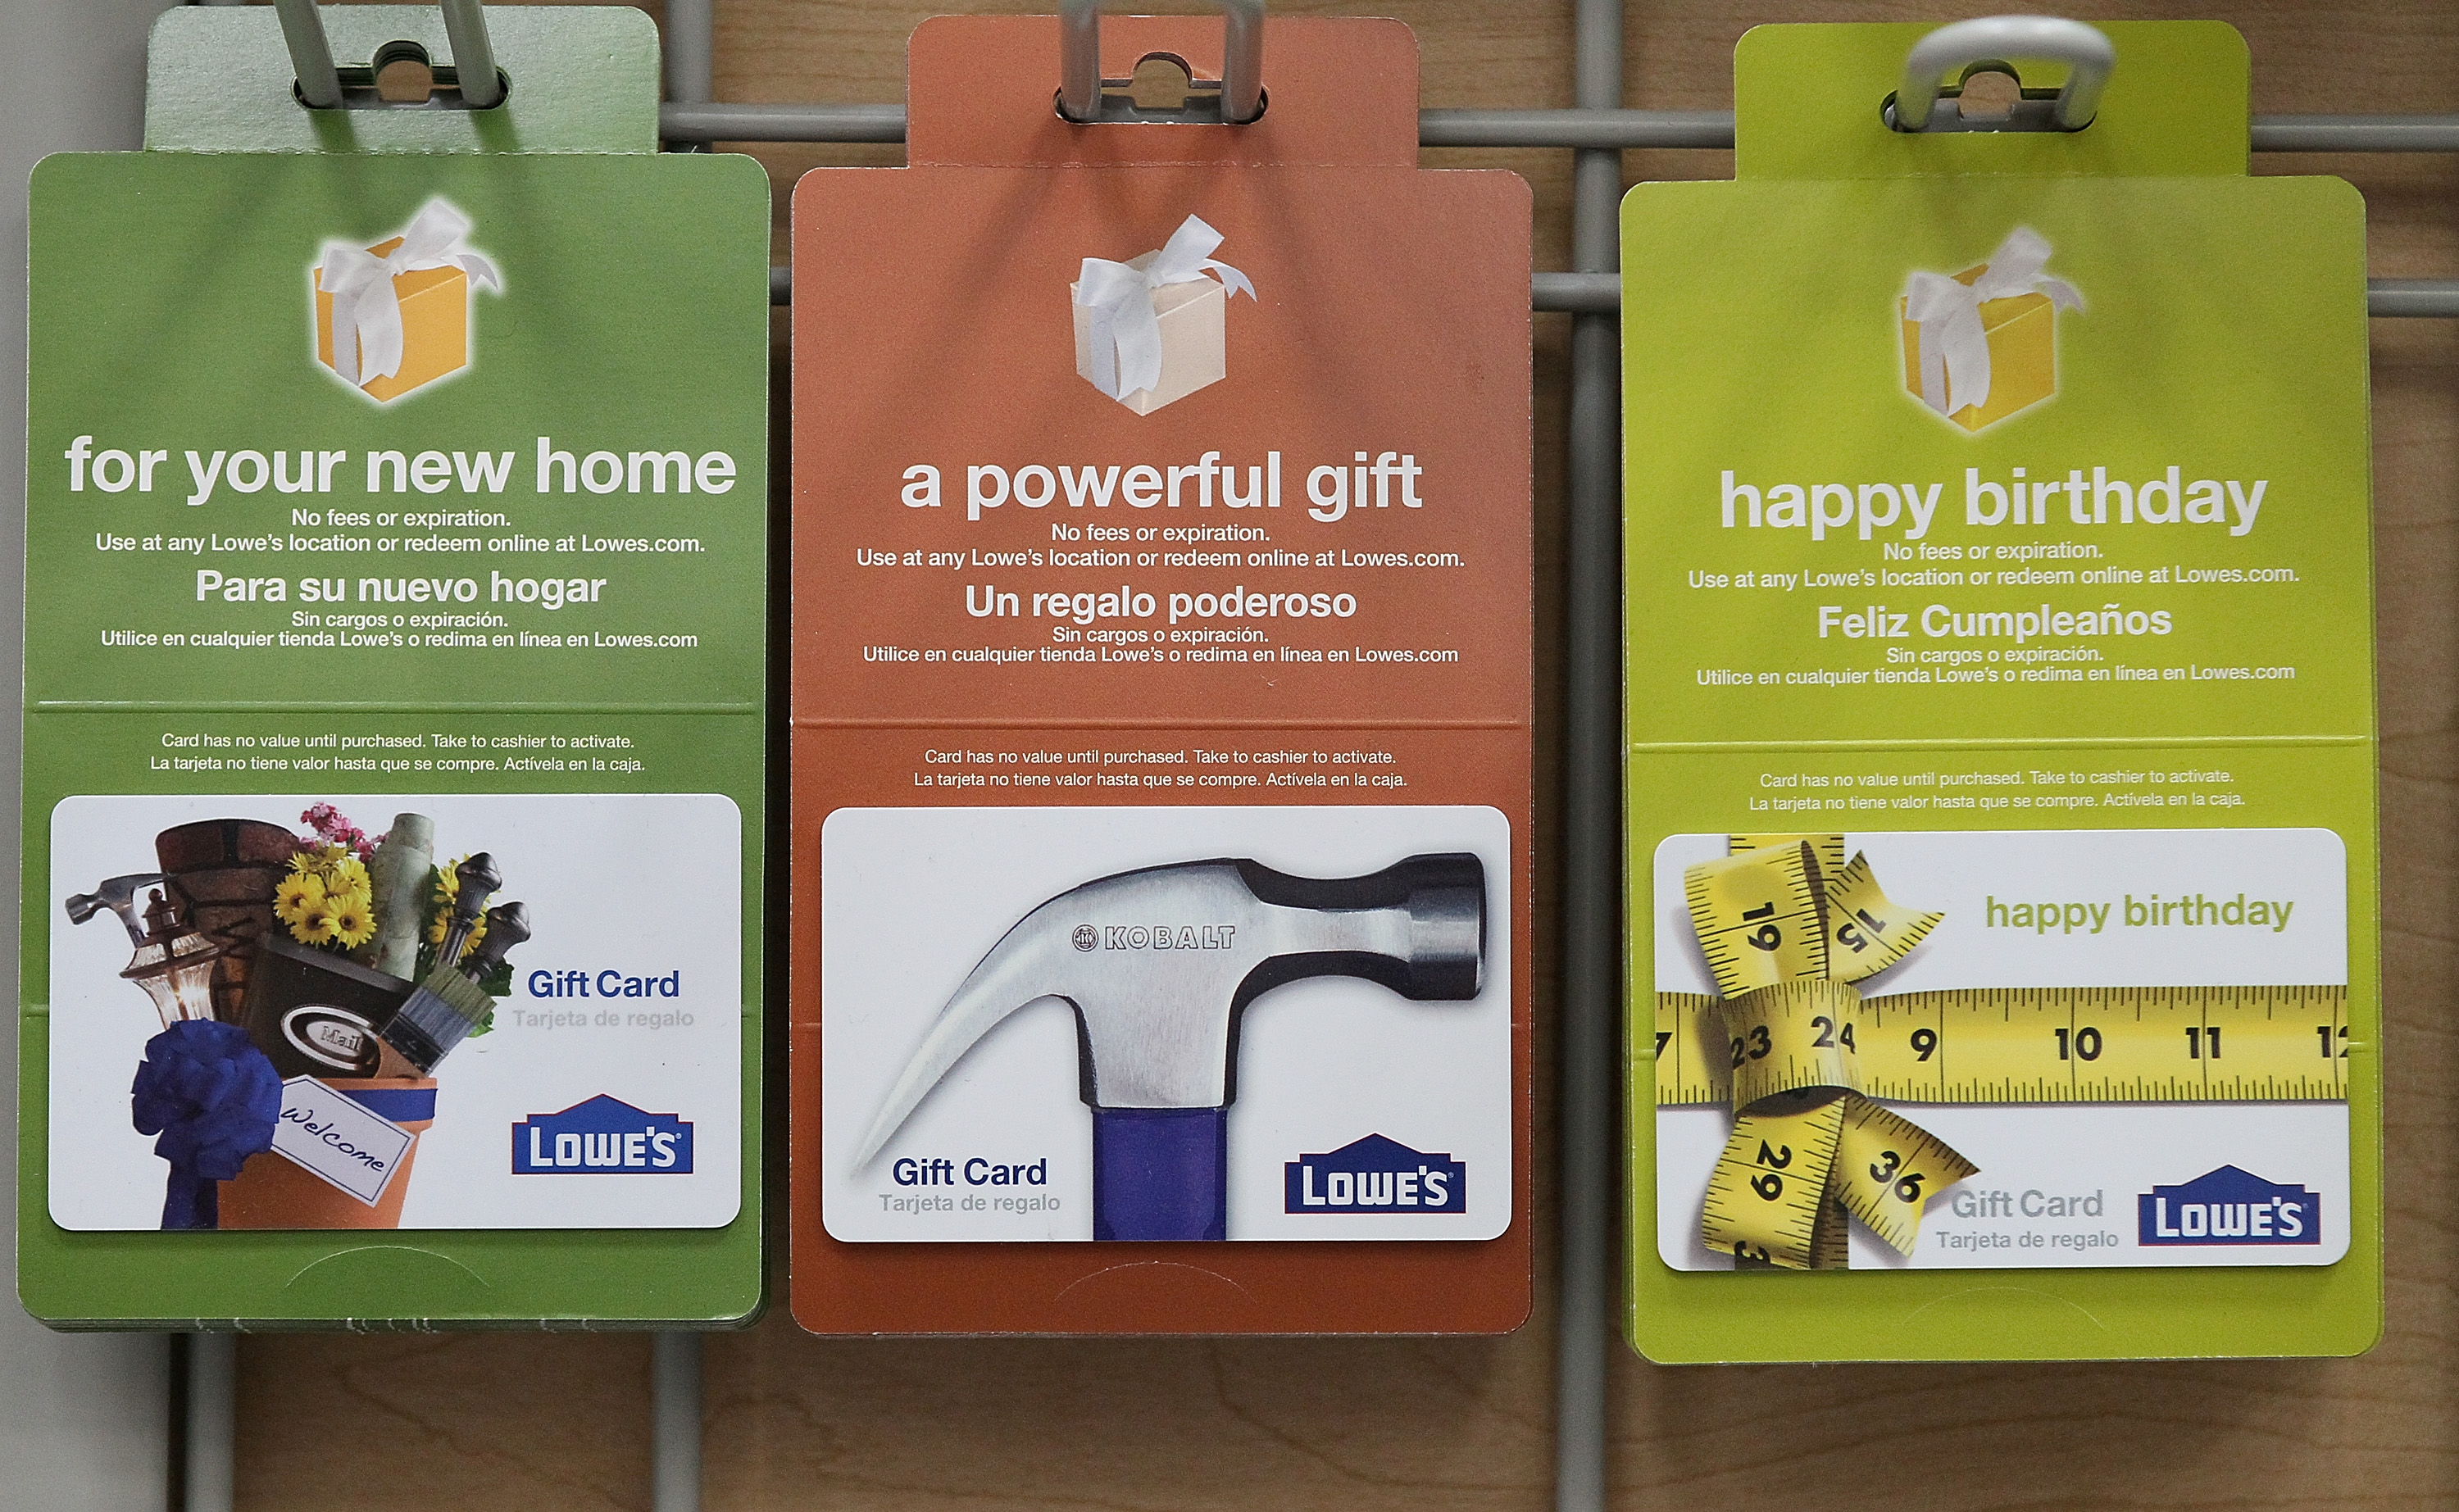 Apps Can Help You Organize and Use Your Gift Cards